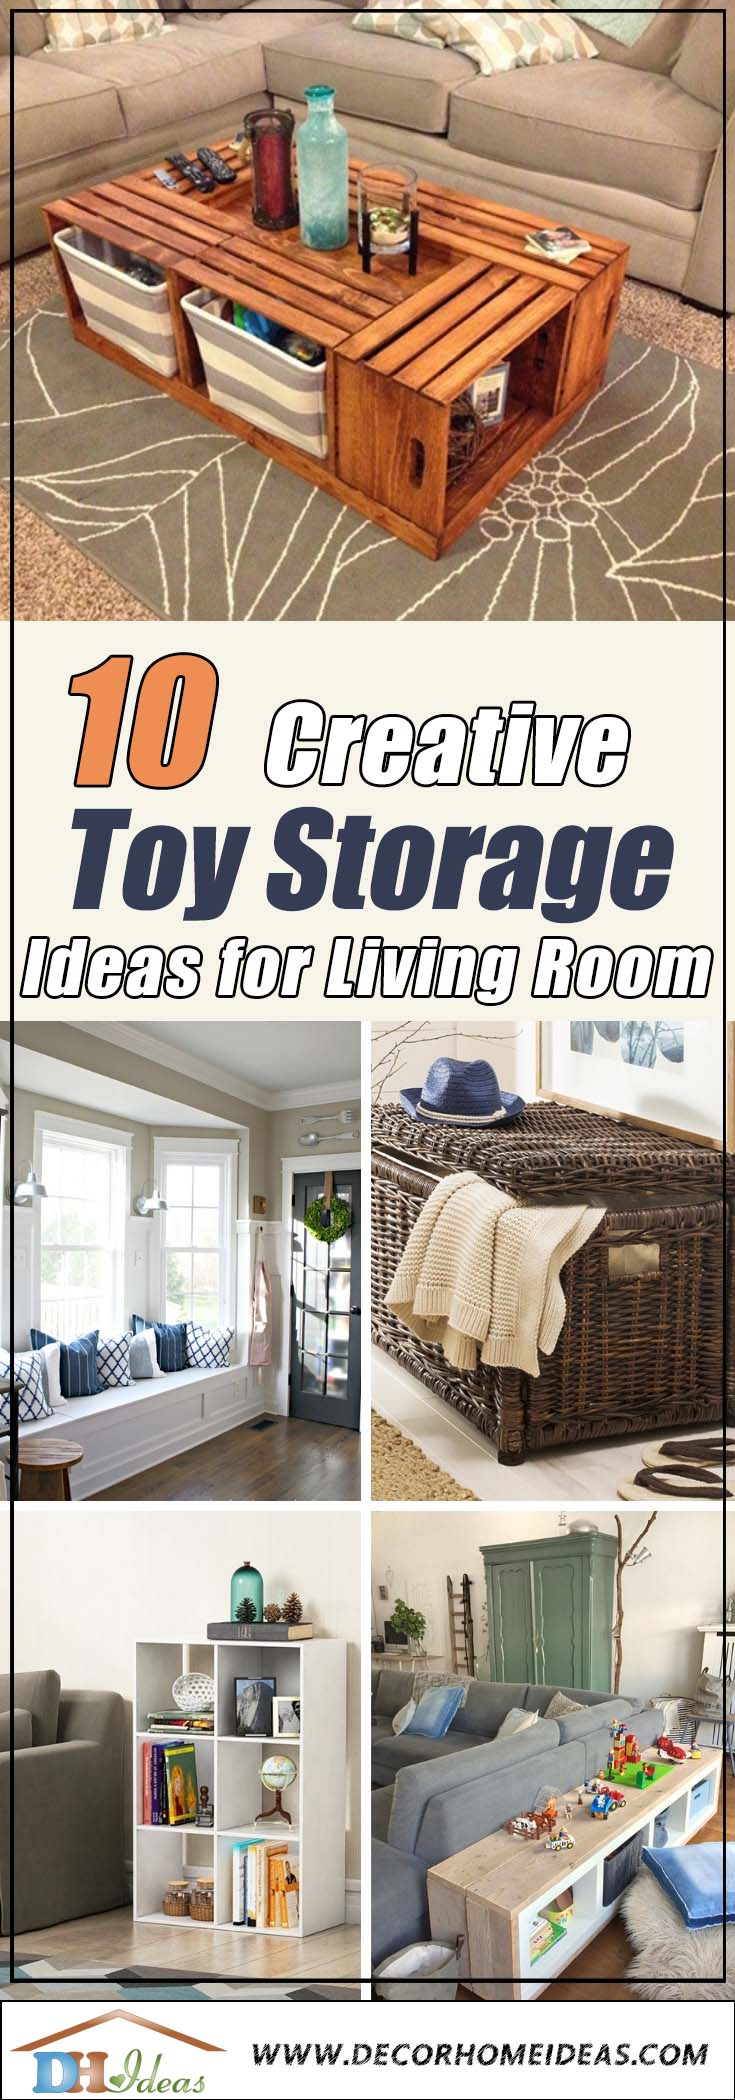 toy storage in living room ideas wall painting 9 best for toystorage livingroom organization decorhomeiedeas